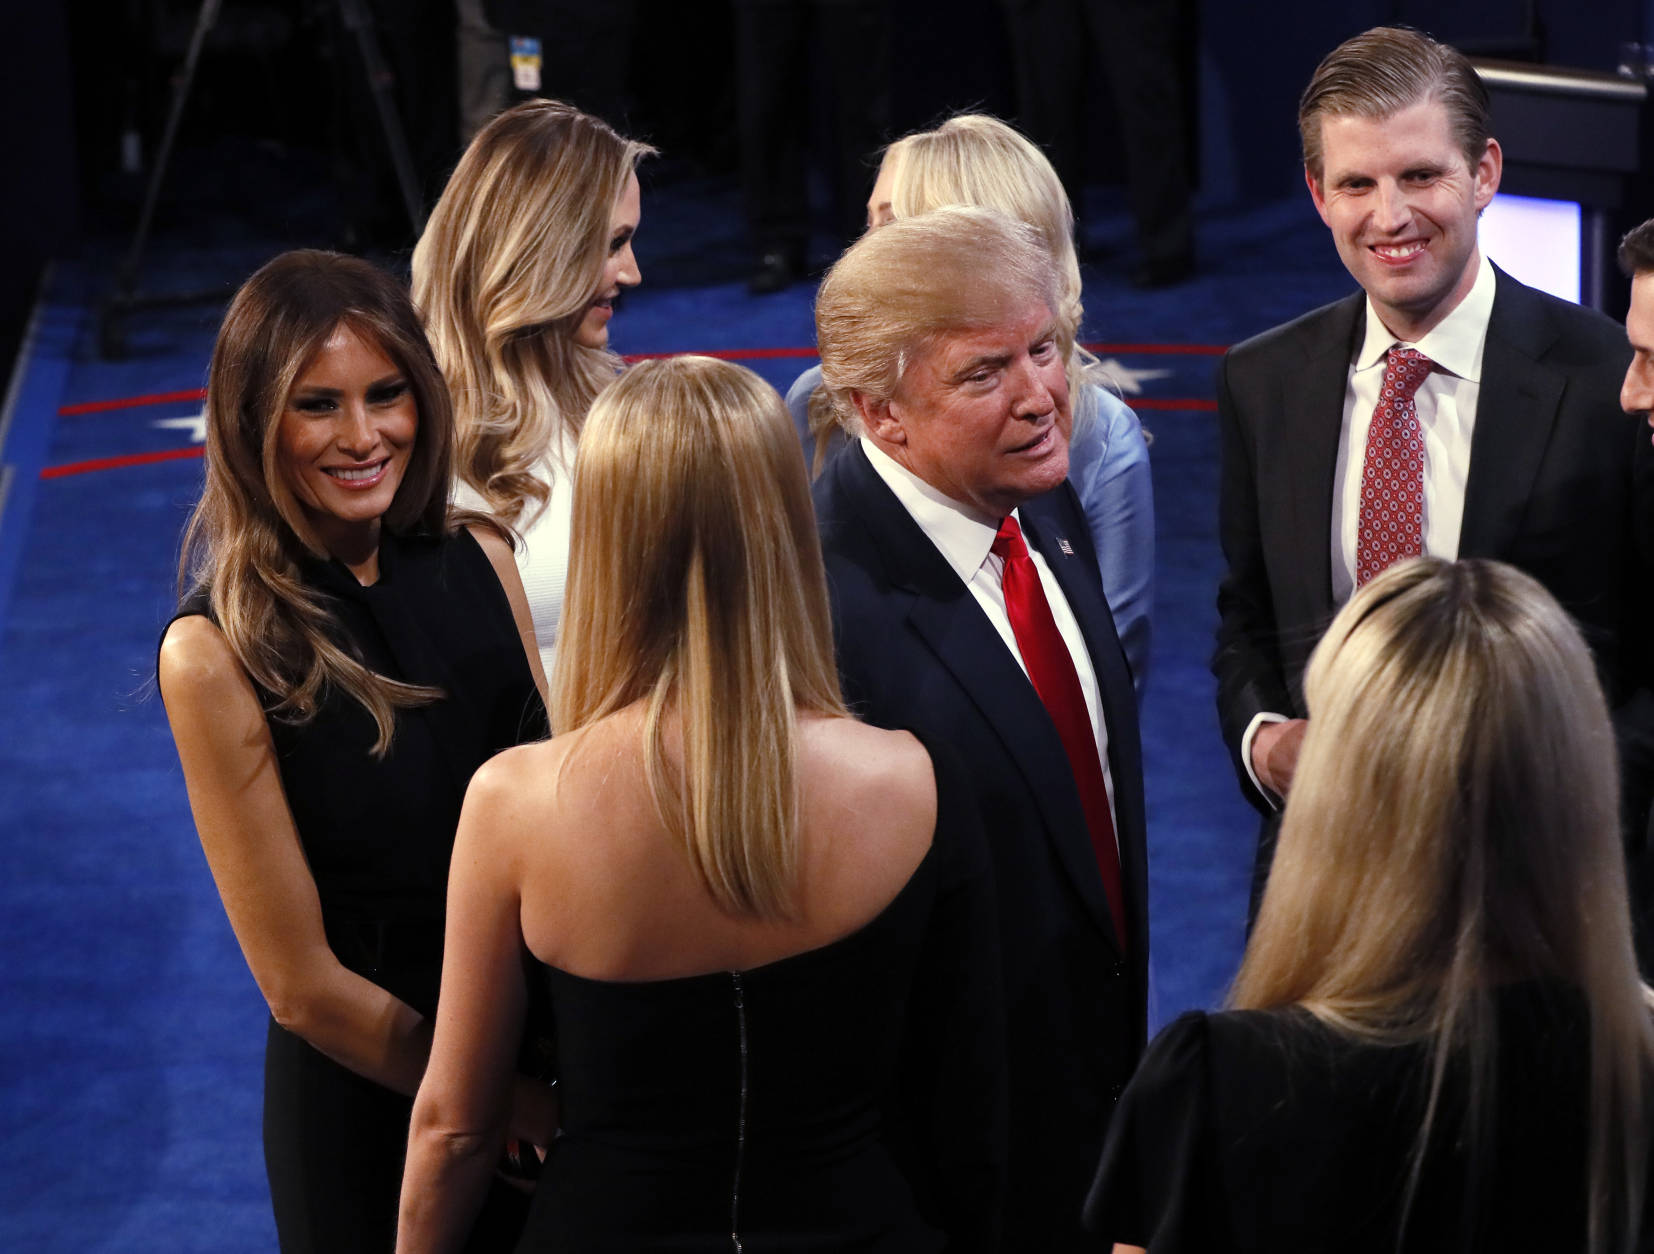 Republican presidential nominee Donald Trump is greeted by his family on stage after the third presidential debate at UNLV in Las Vegas, Wednesday, Oct. 19, 2016. (Mark Ralston/Pool via AP)